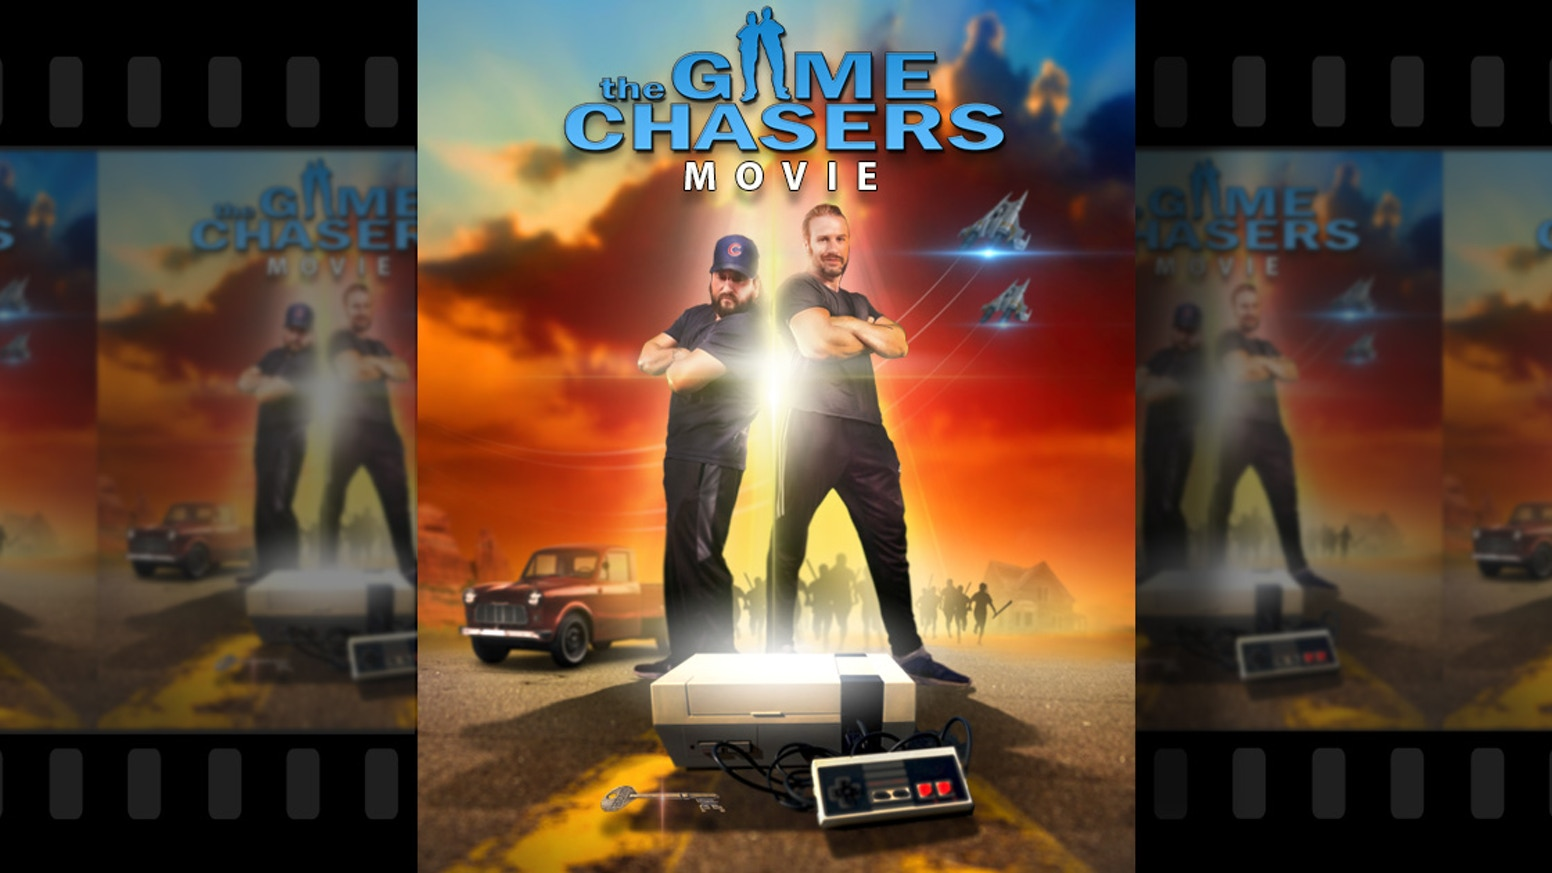 download ghana movies the game